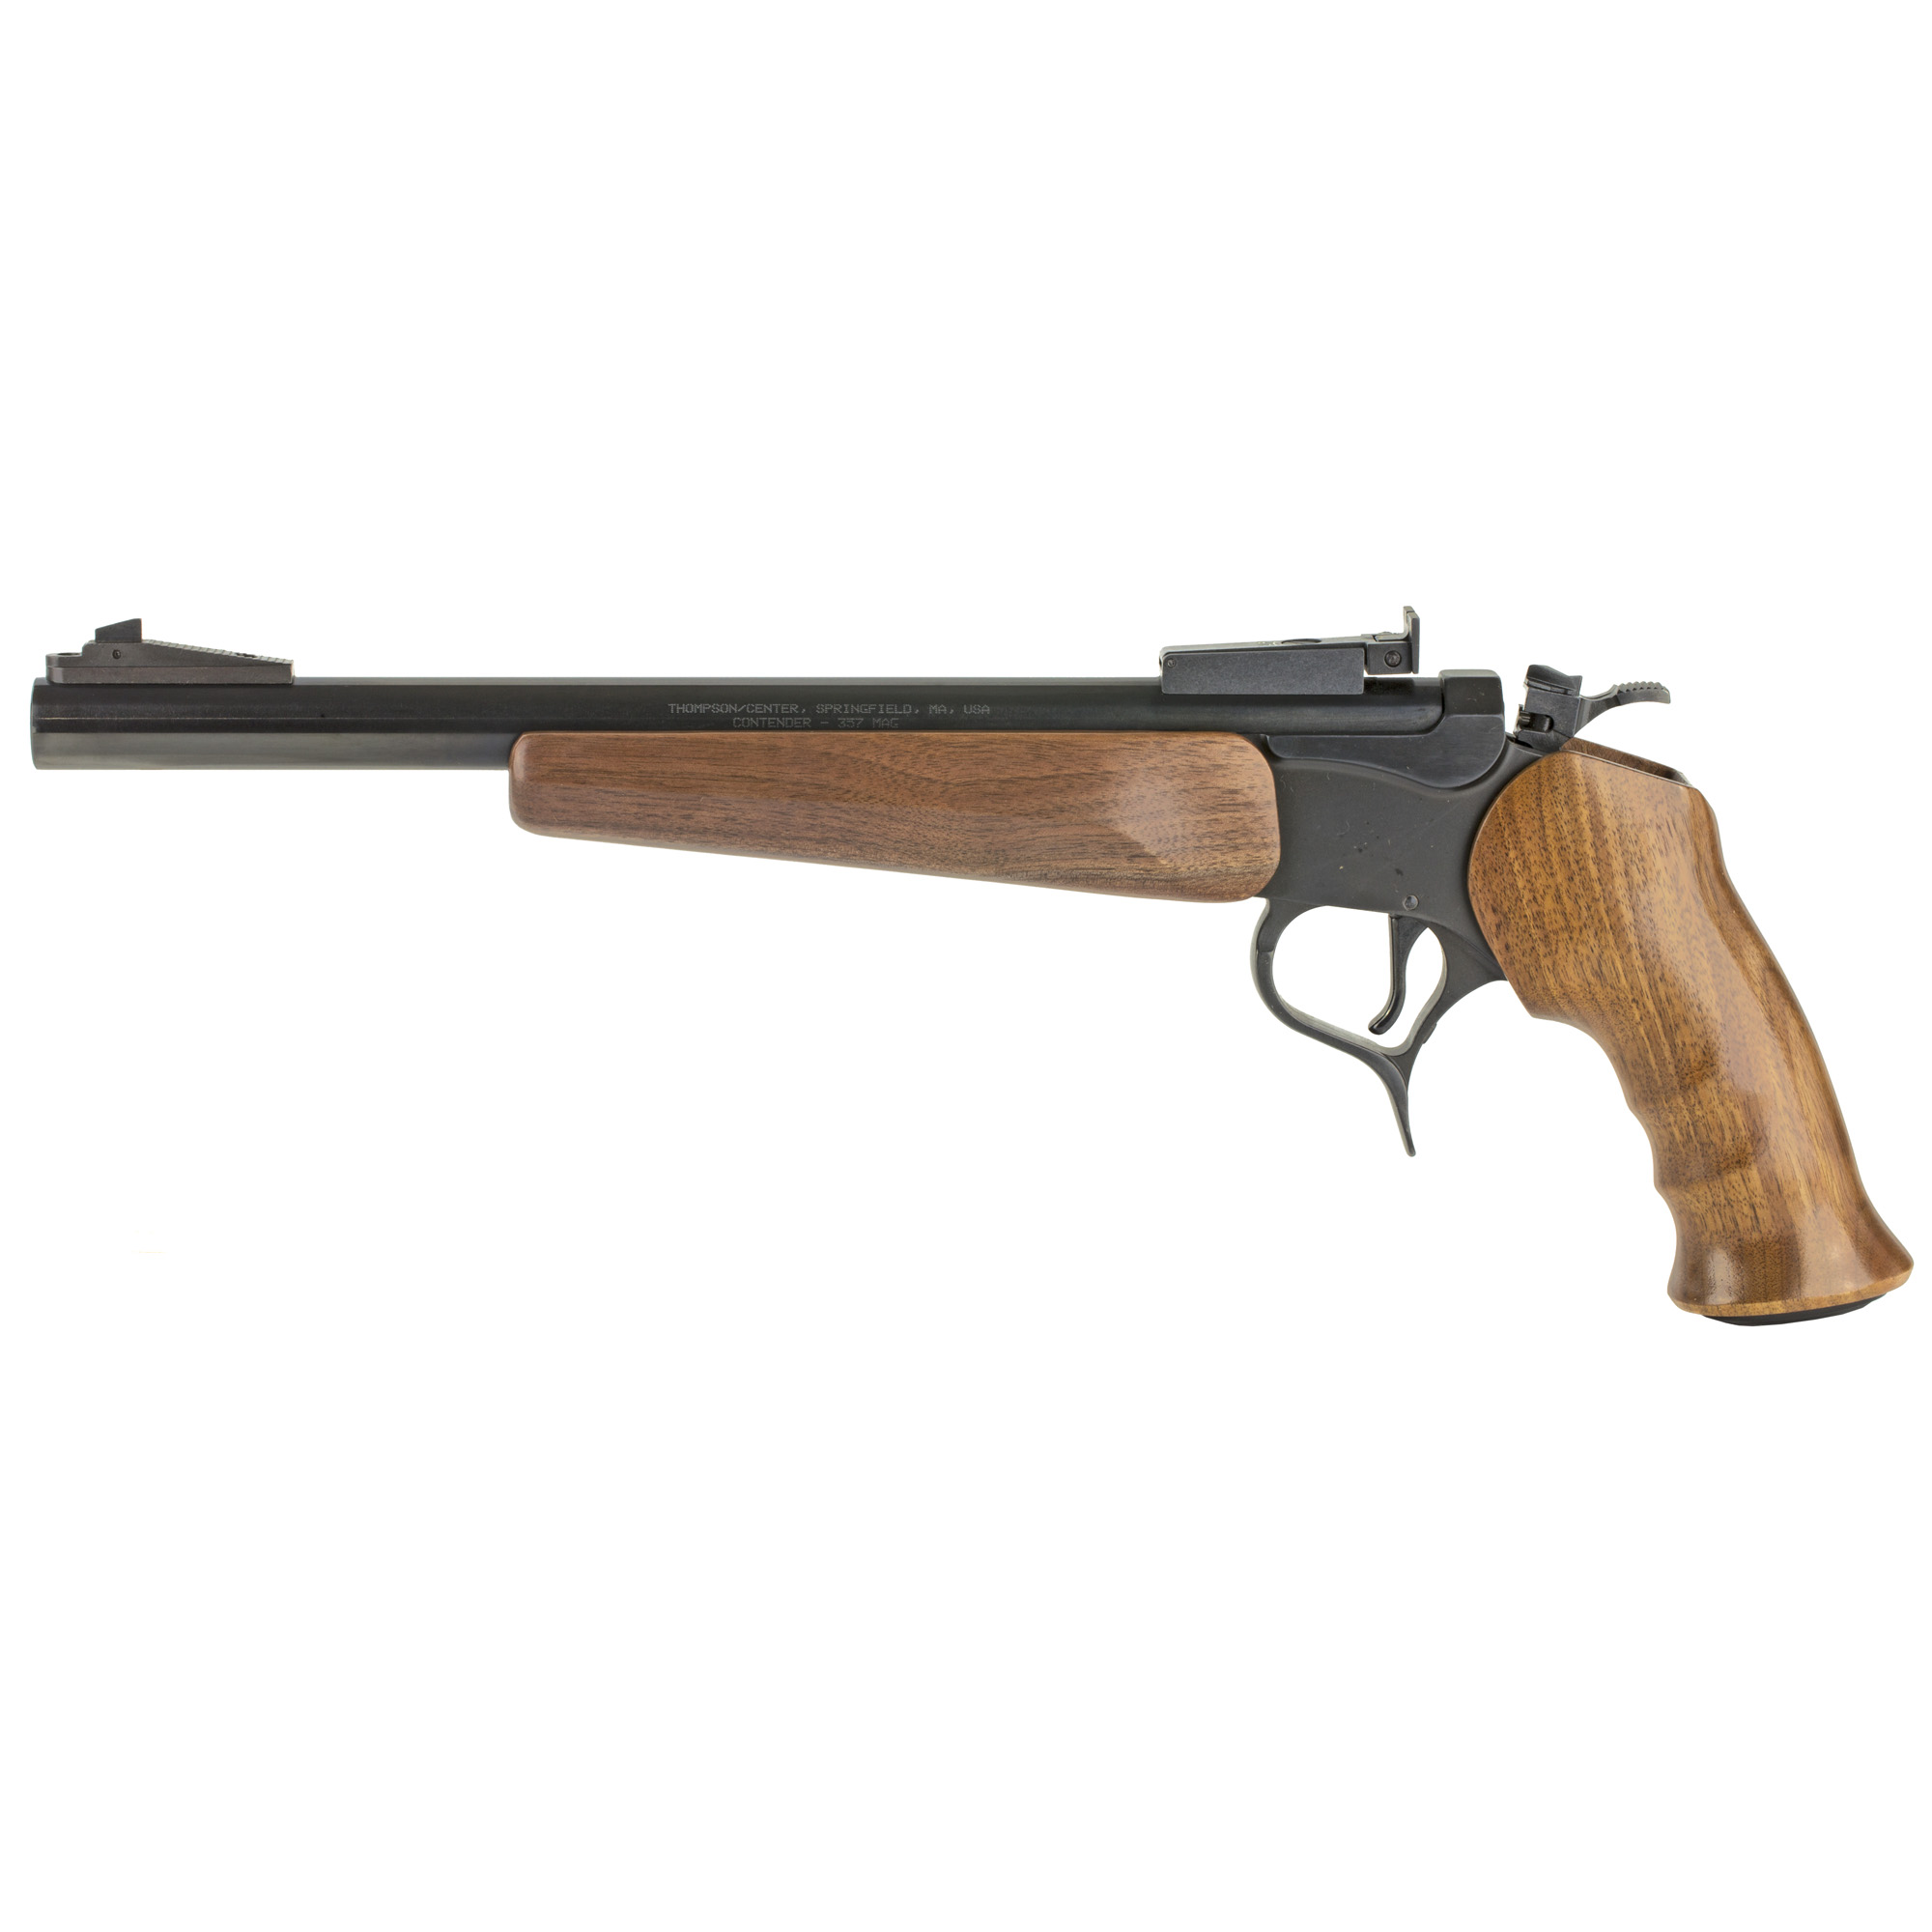 """Since the first CONTENDER(R) pistol was made in 1967"""" it has been the choice of serious handgun hunters around the world. From plinking and small game hunting with rim fire cartridges"""" to varmint and big game hunting with center fire rifle cartridges"""" the G2 Contender(R) continues to be the handgun of choice for those that pride themselves in wanting only the best."""